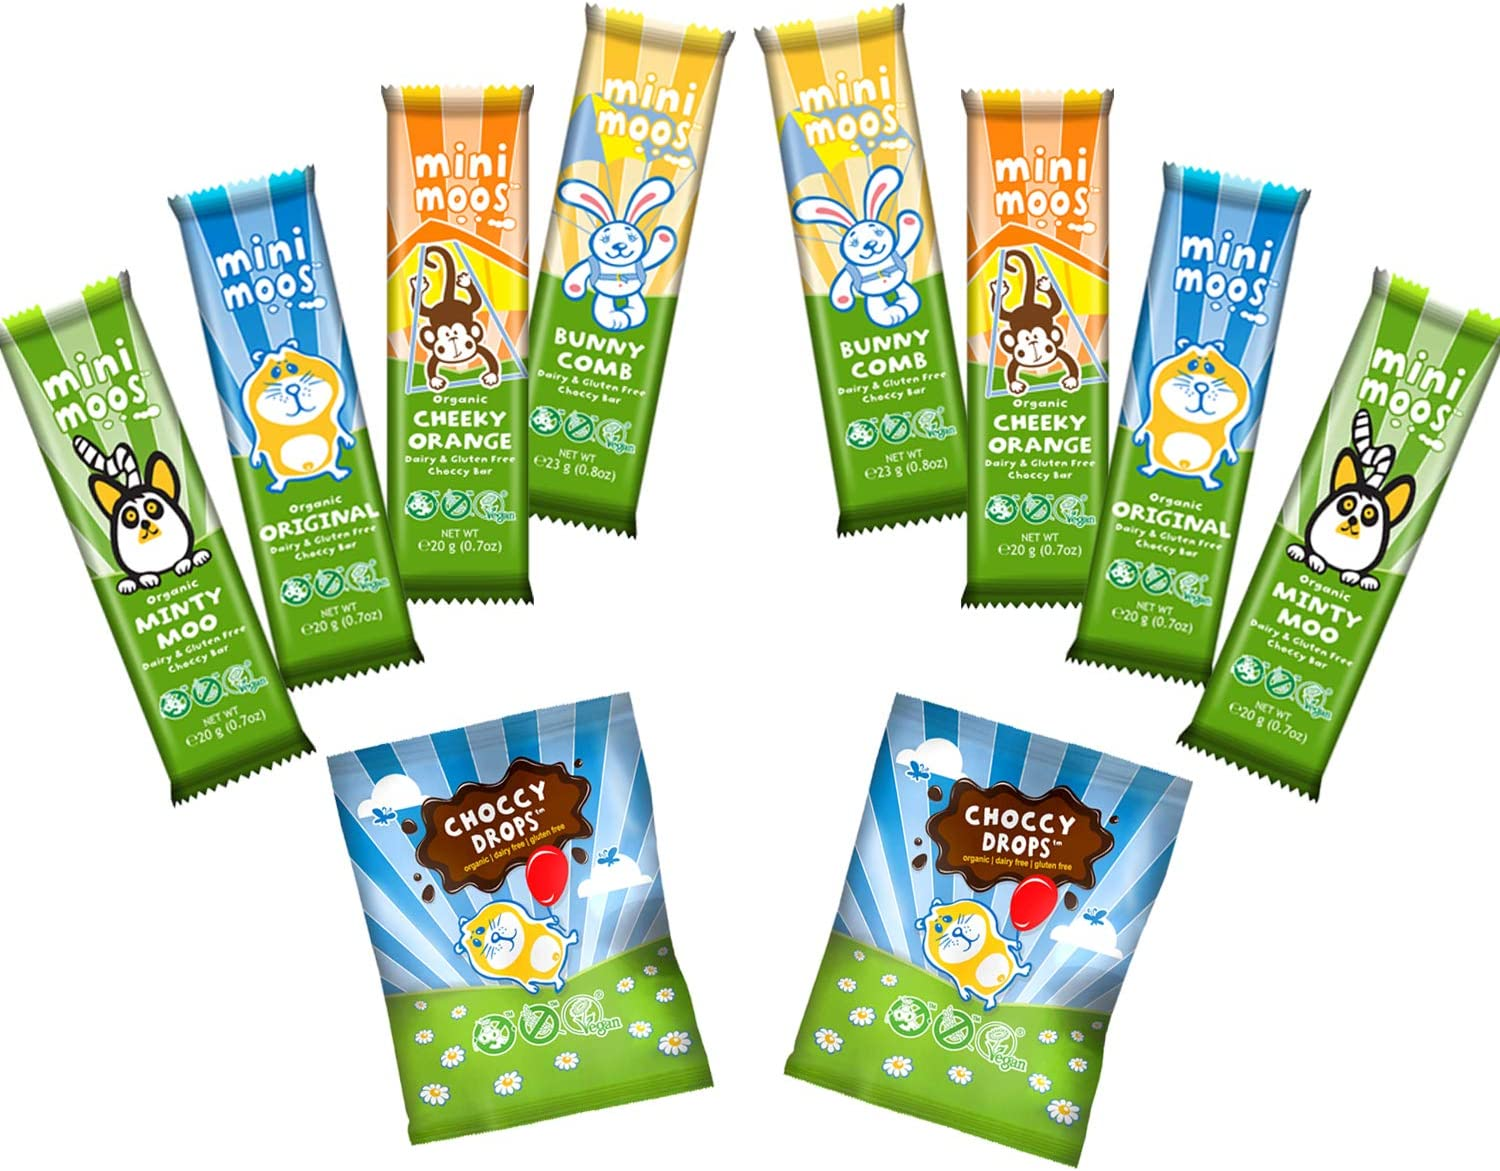 Moo Free Mini Moos Vegan Chocolate Mixed Pack-Mini Moos Choccy Drops-Dairy Free Organic Gluten Free-10 Vegan Choclates